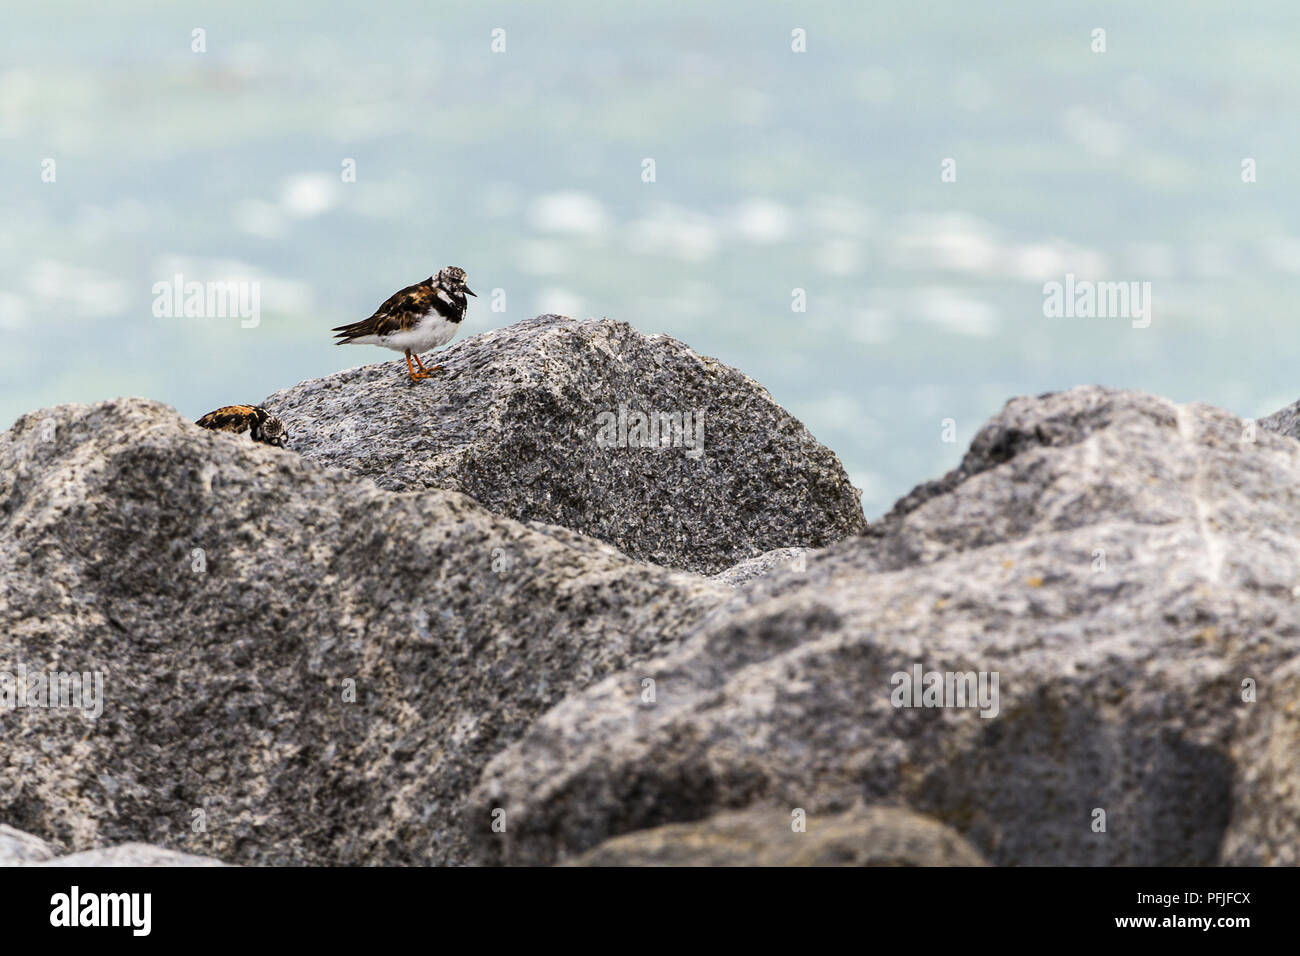 Turnstone (Arenaria interpres) visitor to UK coastline on rocks on the beech at Shoreham by sea UK. Orange brown back black and white markings on head - Stock Image